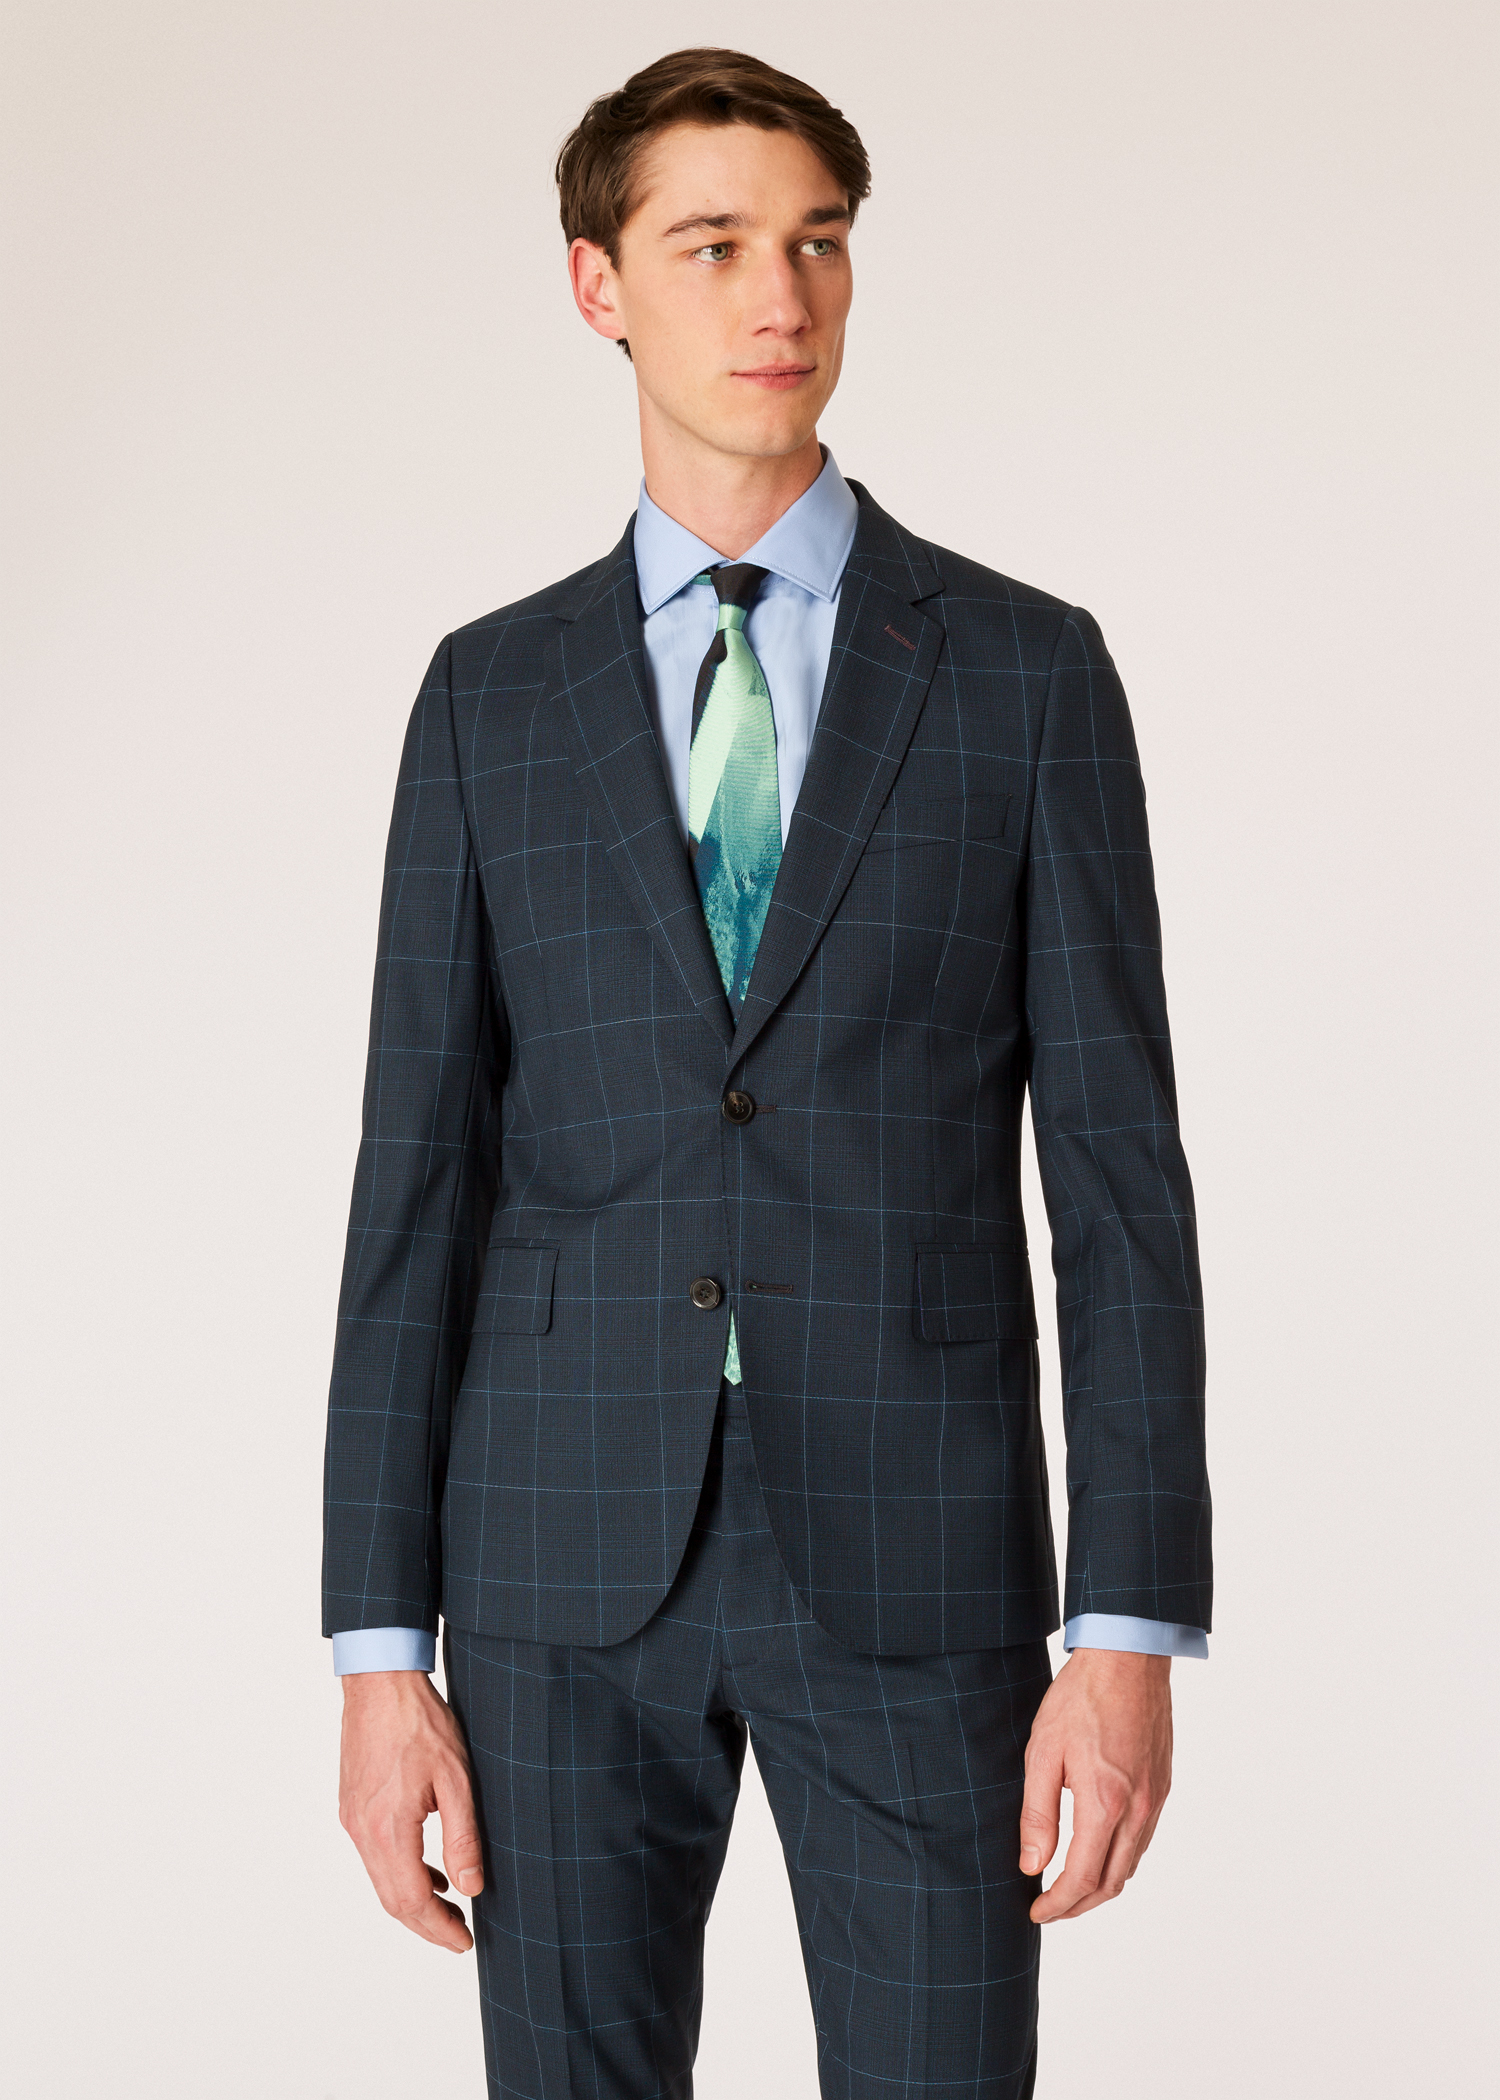 0974412e06368d Model front blazer view - Men's Slim-Fit Dark Navy Check Wool Suit Paul  Smith